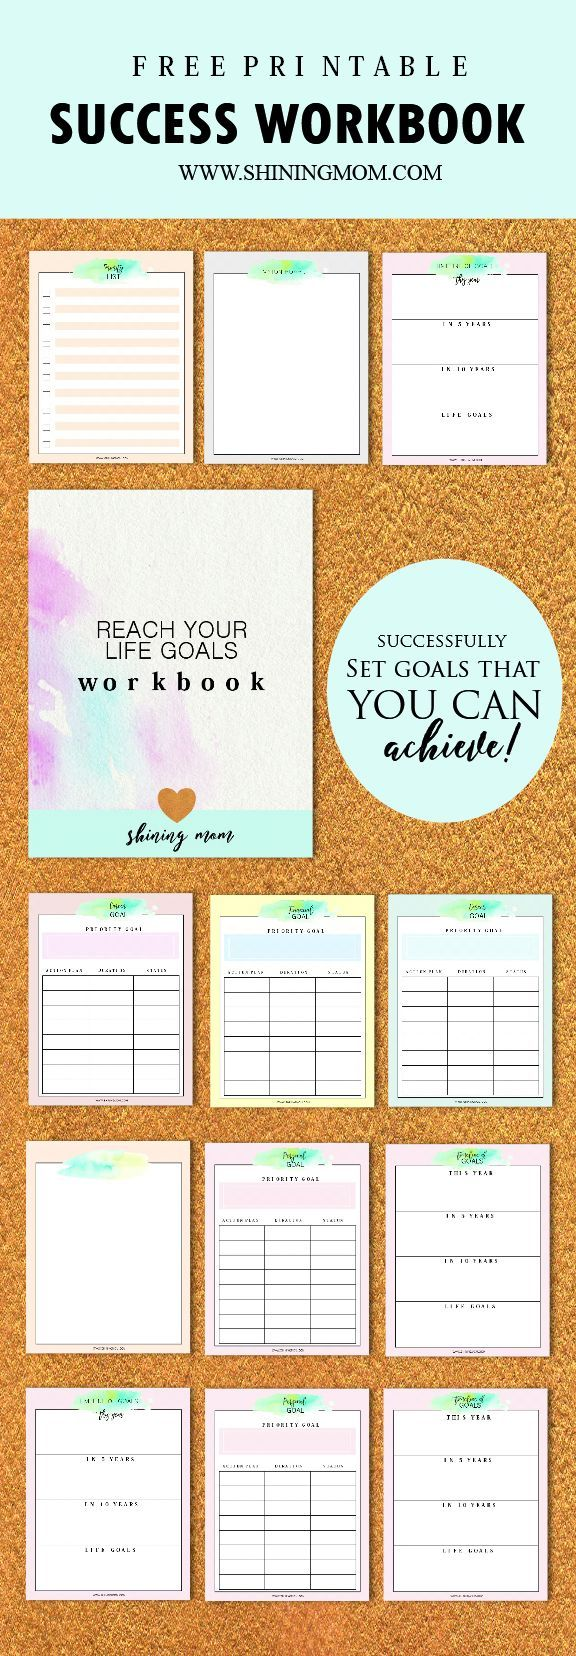 Download your free Success Workbook and Goal Setting Worksheet!